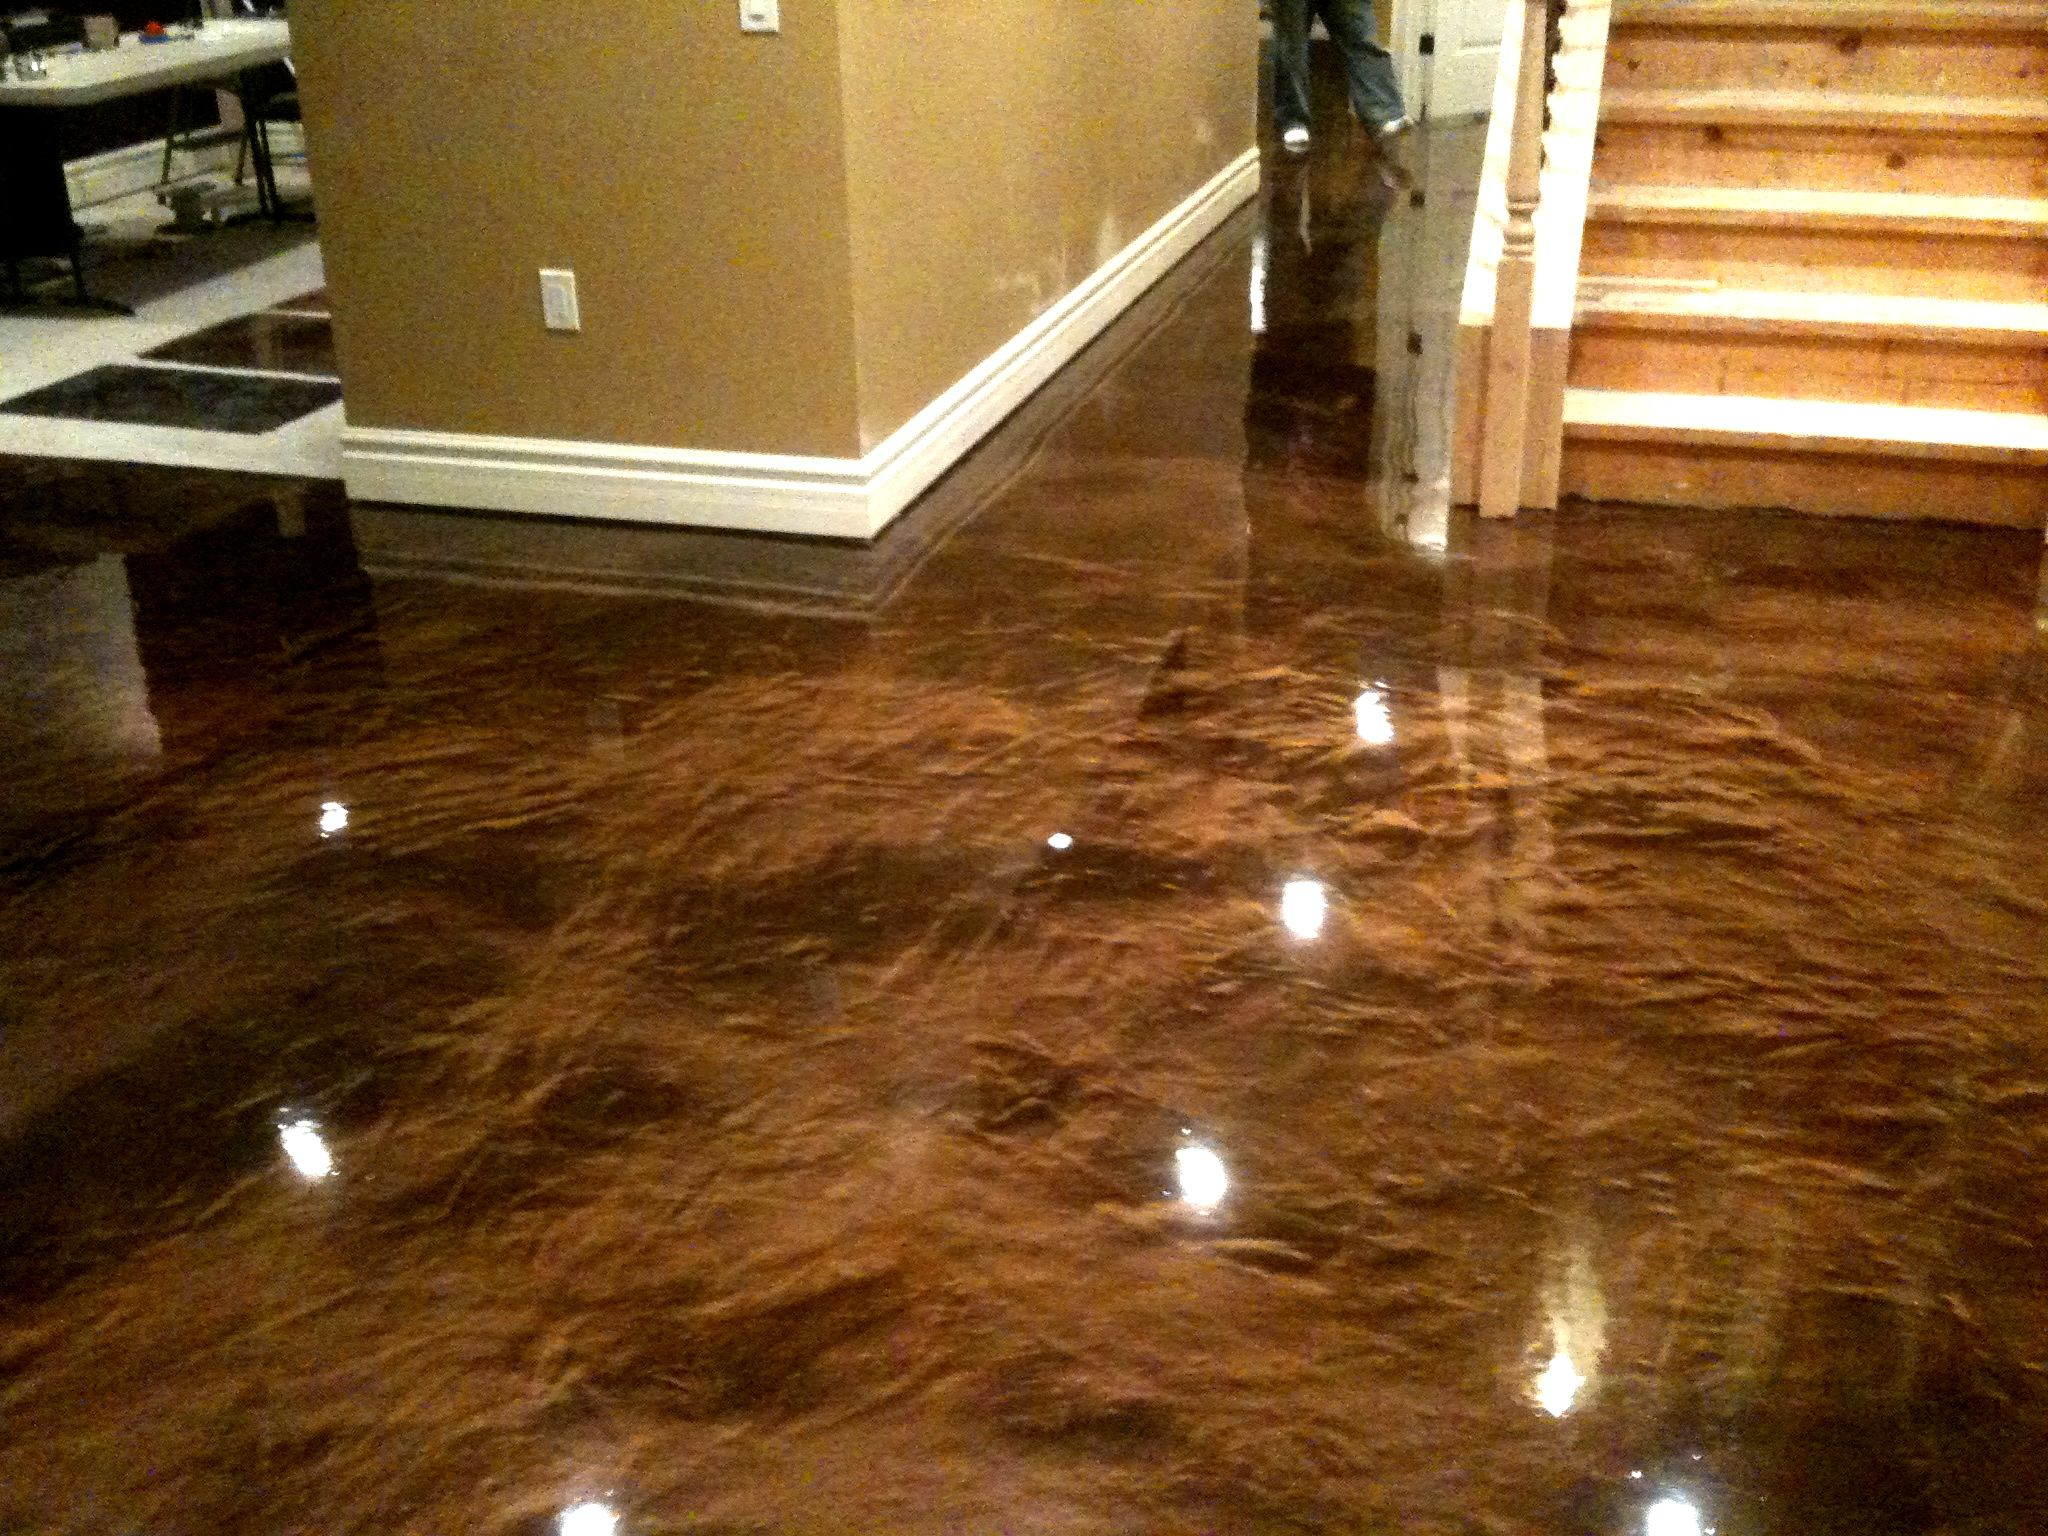 1000+ images about DIY - poxy Floor on Pinterest - ^